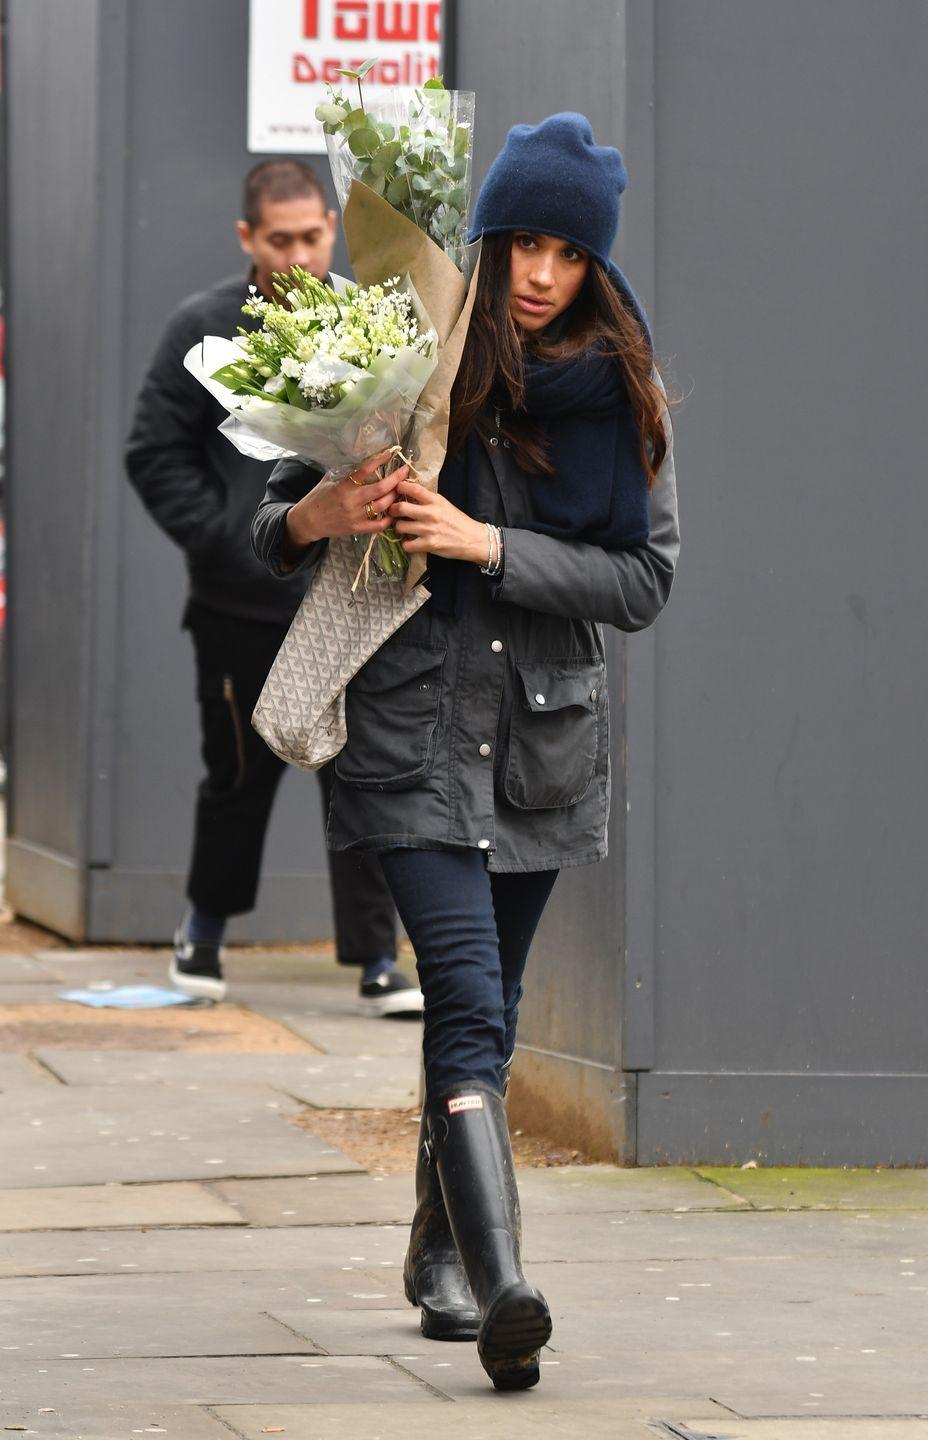 "<p>While shopping for flowers on Kensington High Street, Markle wears a Barbour jacket and Hunter wellingtons.</p><p><a class=""link rapid-noclick-resp"" href=""https://www.neimanmarcus.com/Hunter-Boot-Original-Tall-Gloss-Rain-Boot/prod195770226/p.prod"" rel=""nofollow noopener"" target=""_blank"" data-ylk=""slk:SHOP NOW"">SHOP NOW</a> <em>Hunter Boot Original Tall Gloss Rain Boot, $150</em><br></p>"